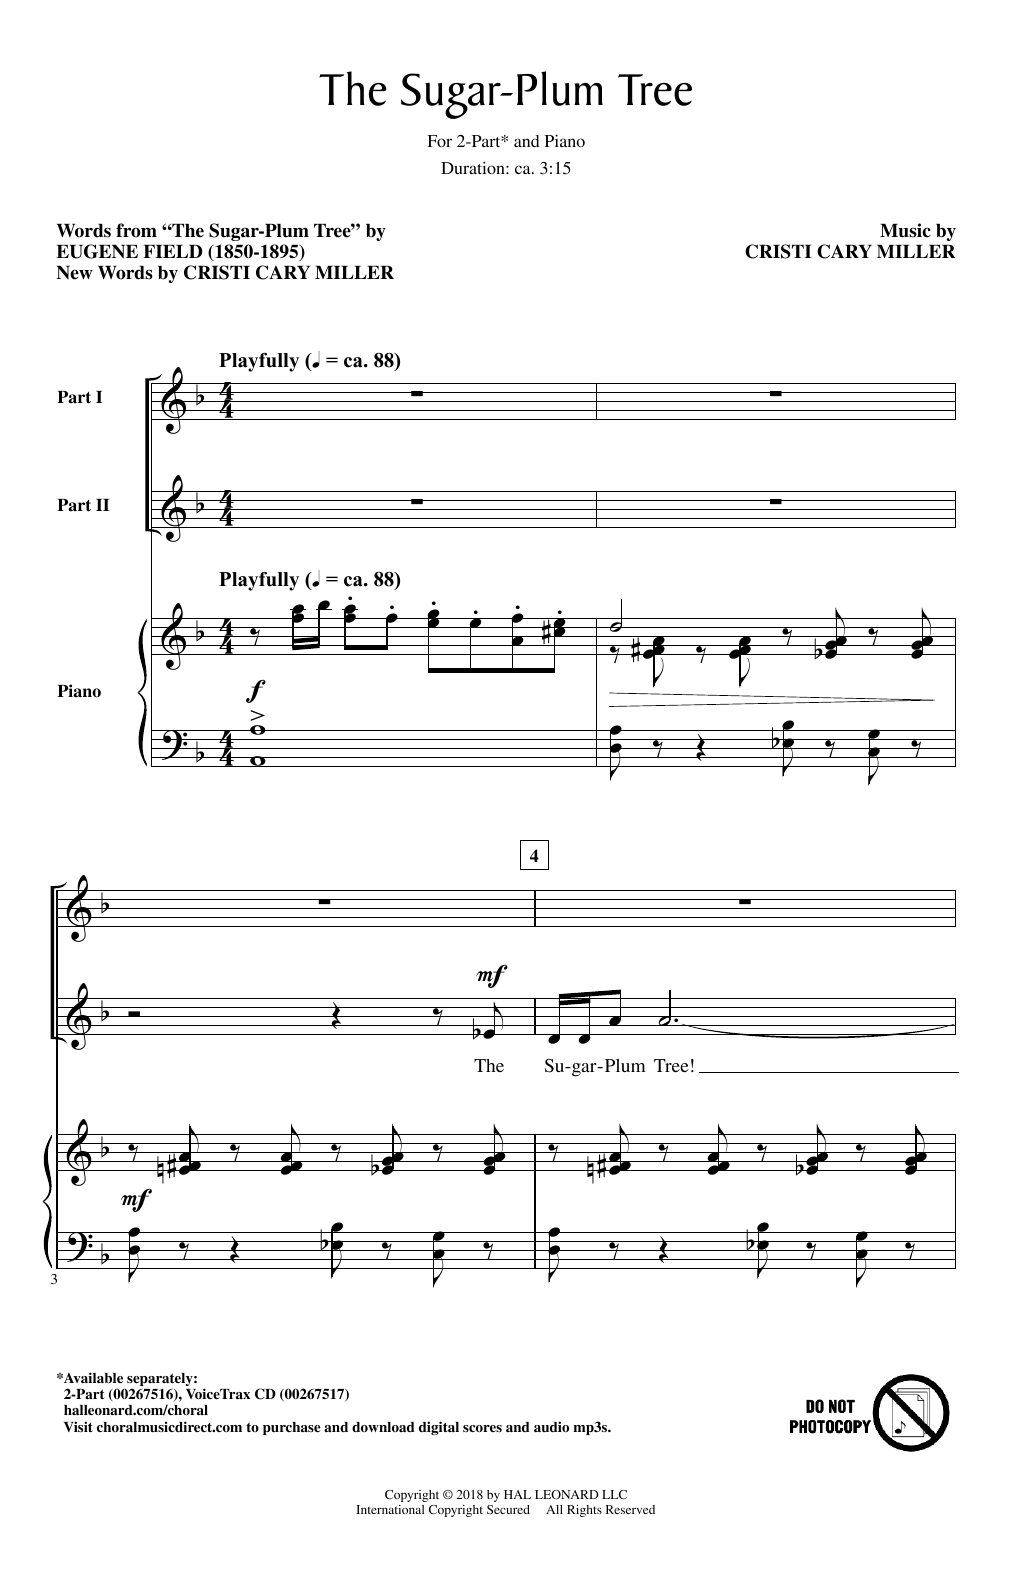 The Sugar-Plum Tree Sheet Music